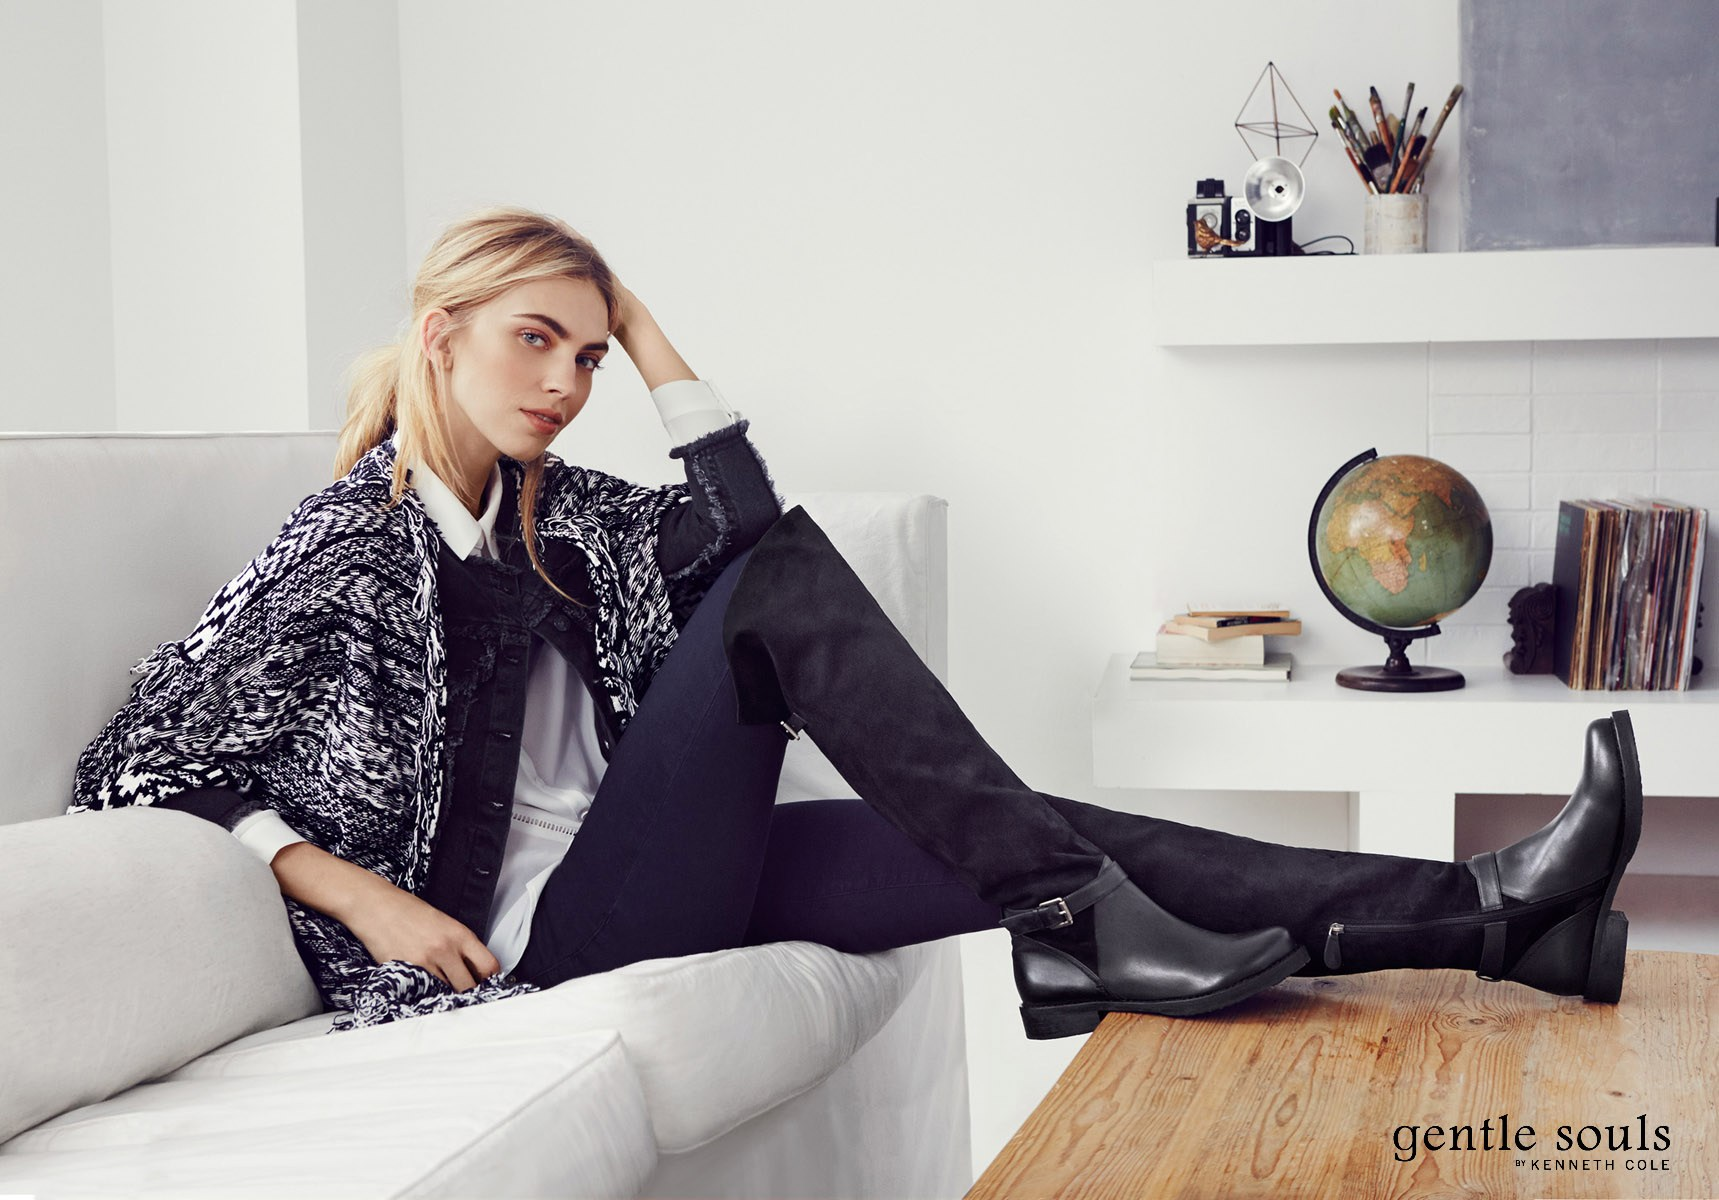 Image result for kenneth cole gentle souls campaign